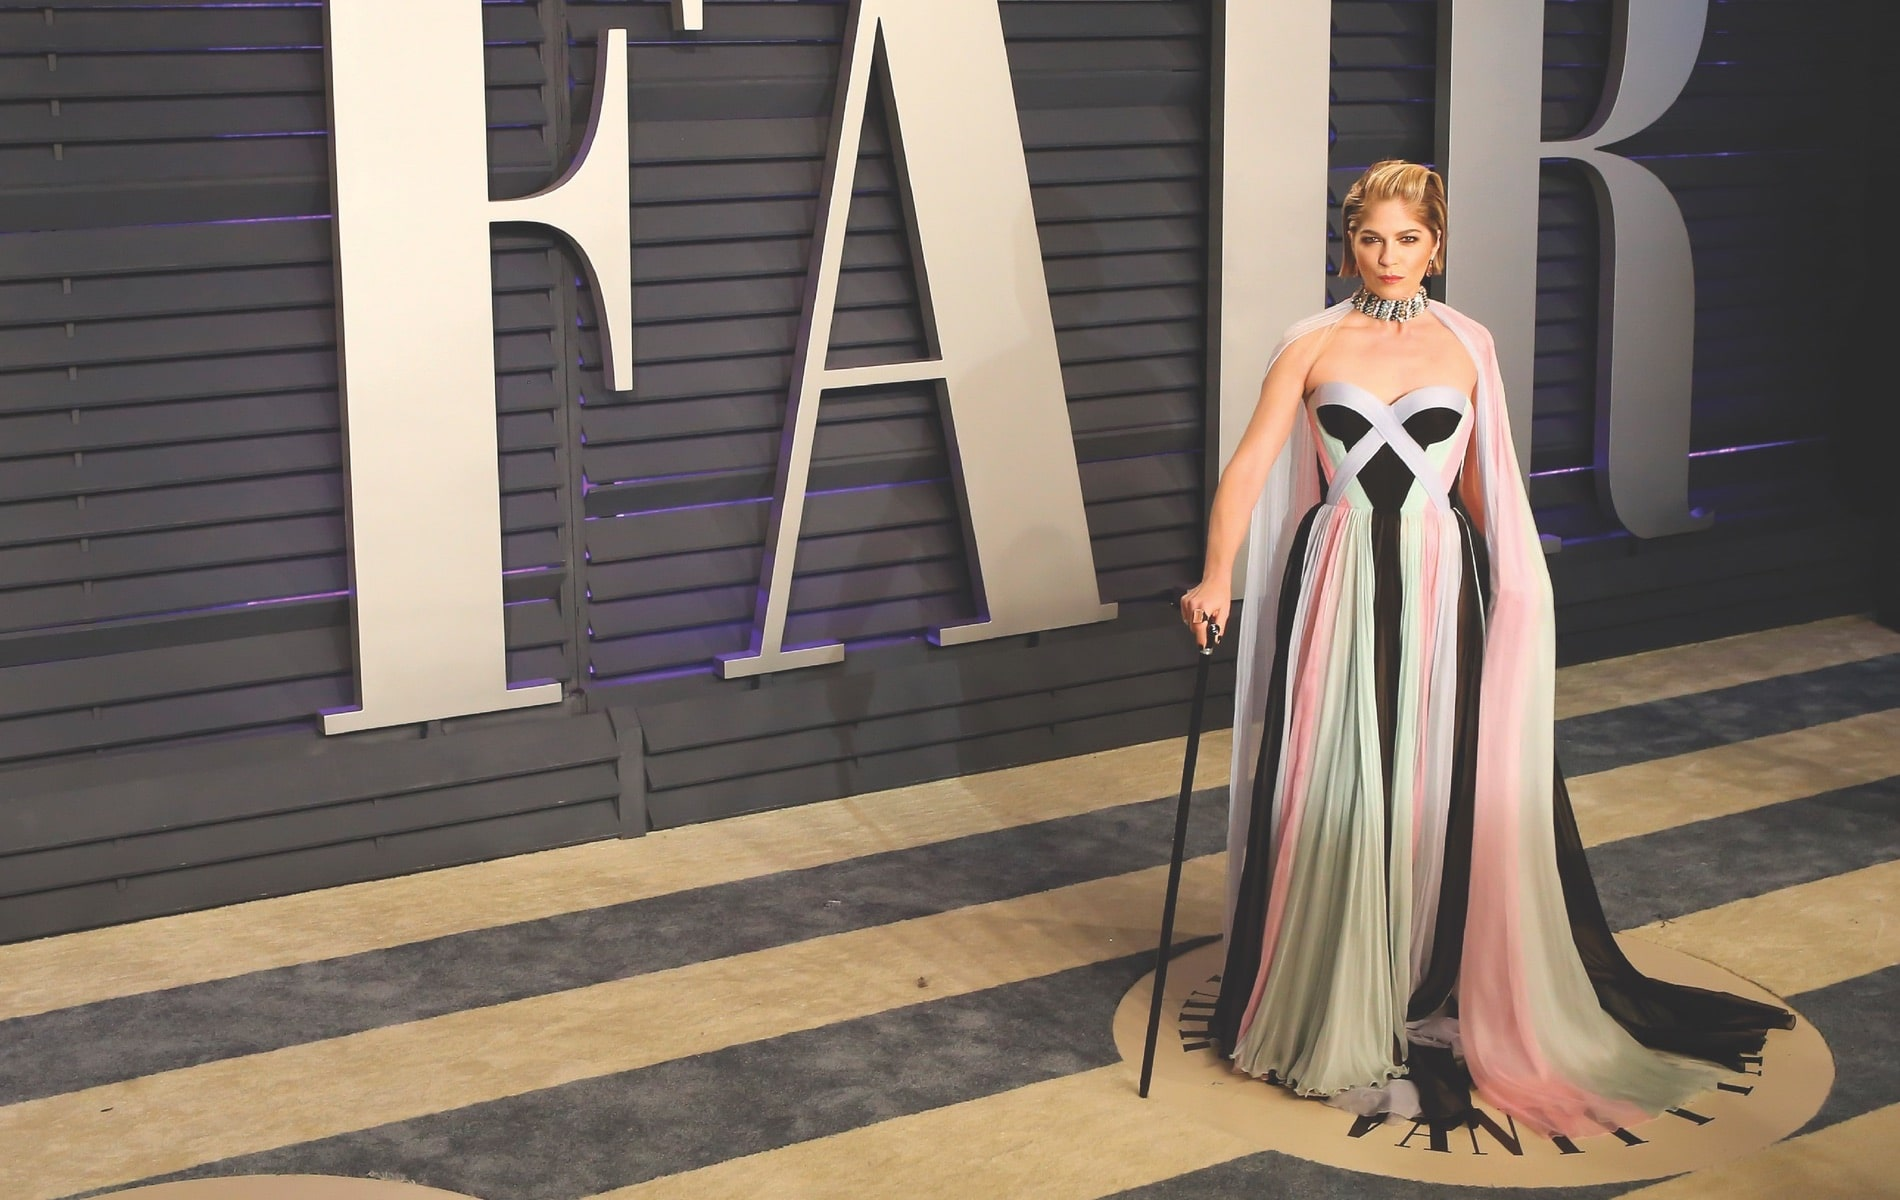 Actress Selma Blair attends the Vanity Fair Oscars Party in February of 2019 following her diagnosis with multiple sclerosis in August of 2018.